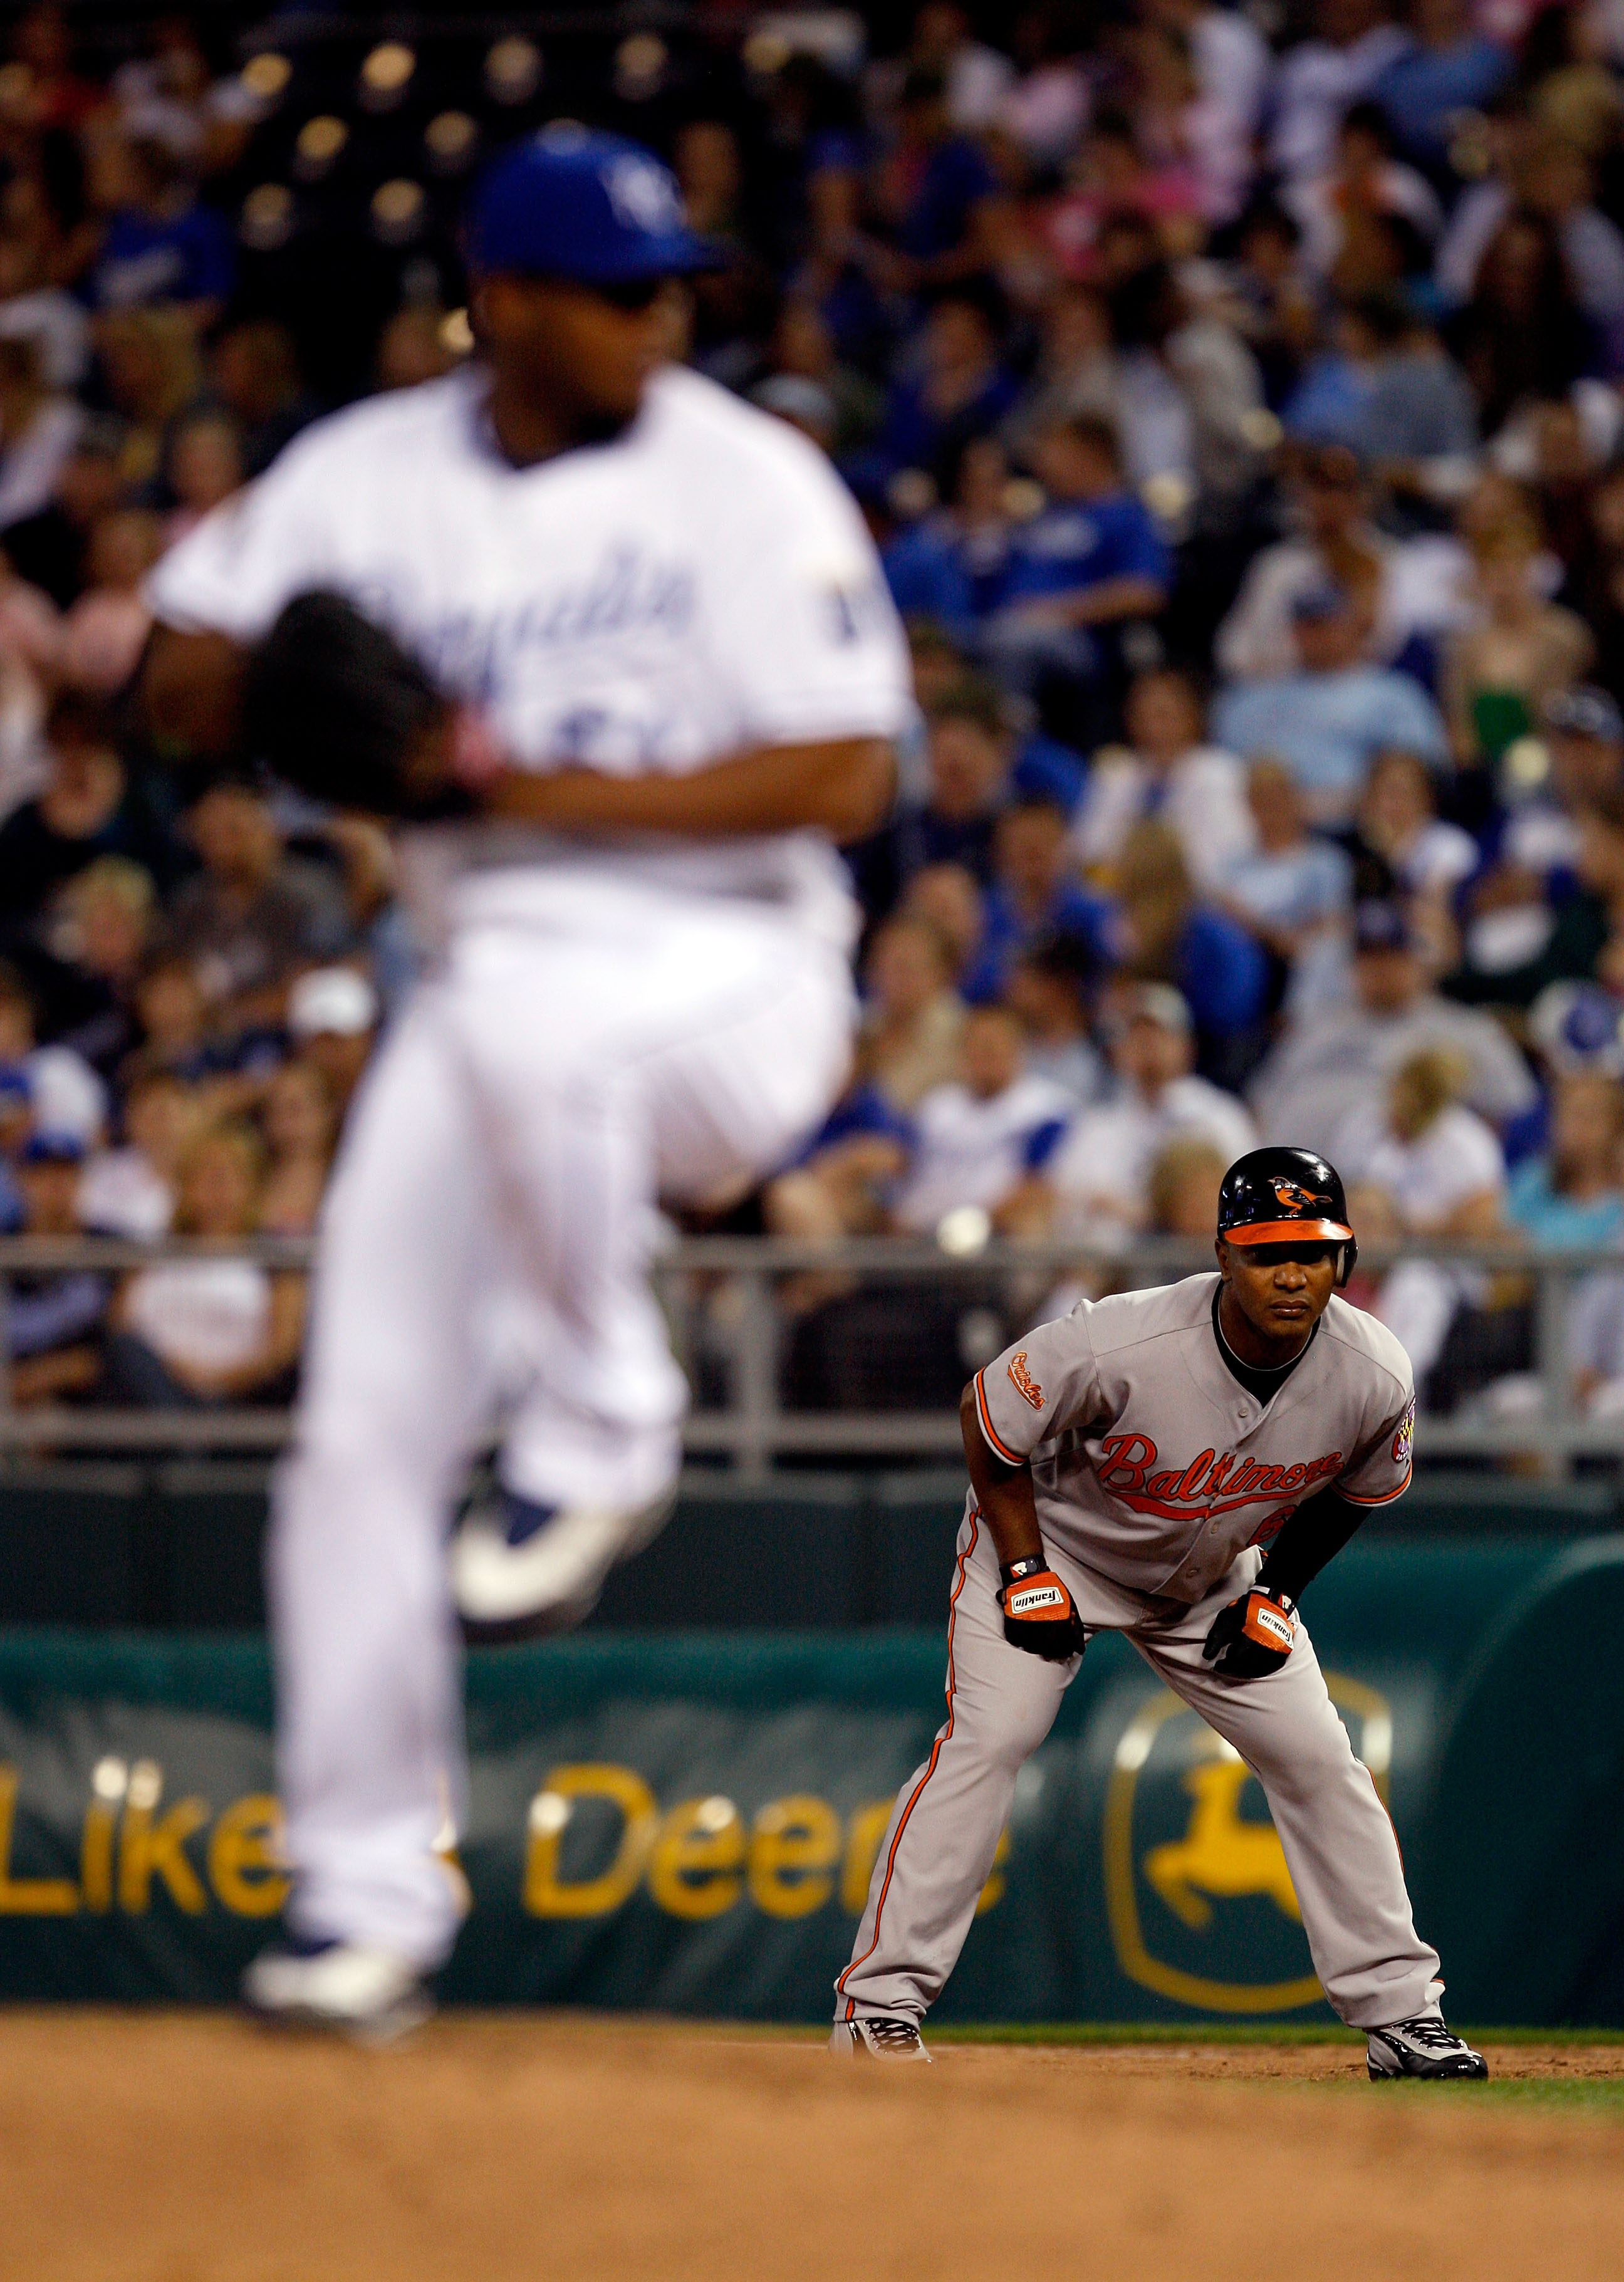 KANSAS CITY, MO - MAY 14:  Melvin Mora #6 of the Baltimore Orioles takes a lead as Robinson Tejada #51 of the Kansas City Royals during the game on May 14, 2009 at Kauffman Stadium in Kansas City, Missouri.  (Photo by Jamie Squire/Getty Images)